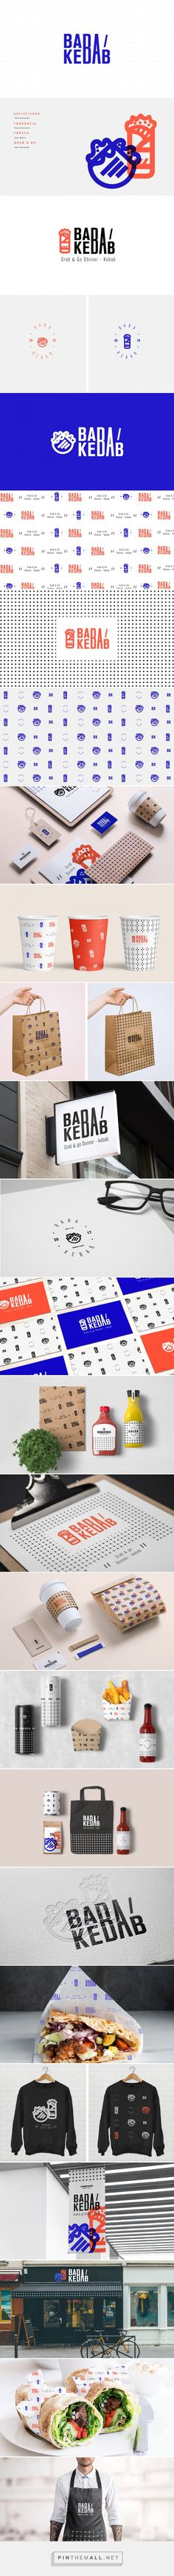 BABA KEBAB Restaurant Branding by Lina Bassiouny | Fivestar Branding Agency – Design and Branding Agency & Curated Inspiration Gallery #restaurant #restaurantbranding #branding #brand #design #foodpackaging #packaging #designinspiration #brandinginspiration